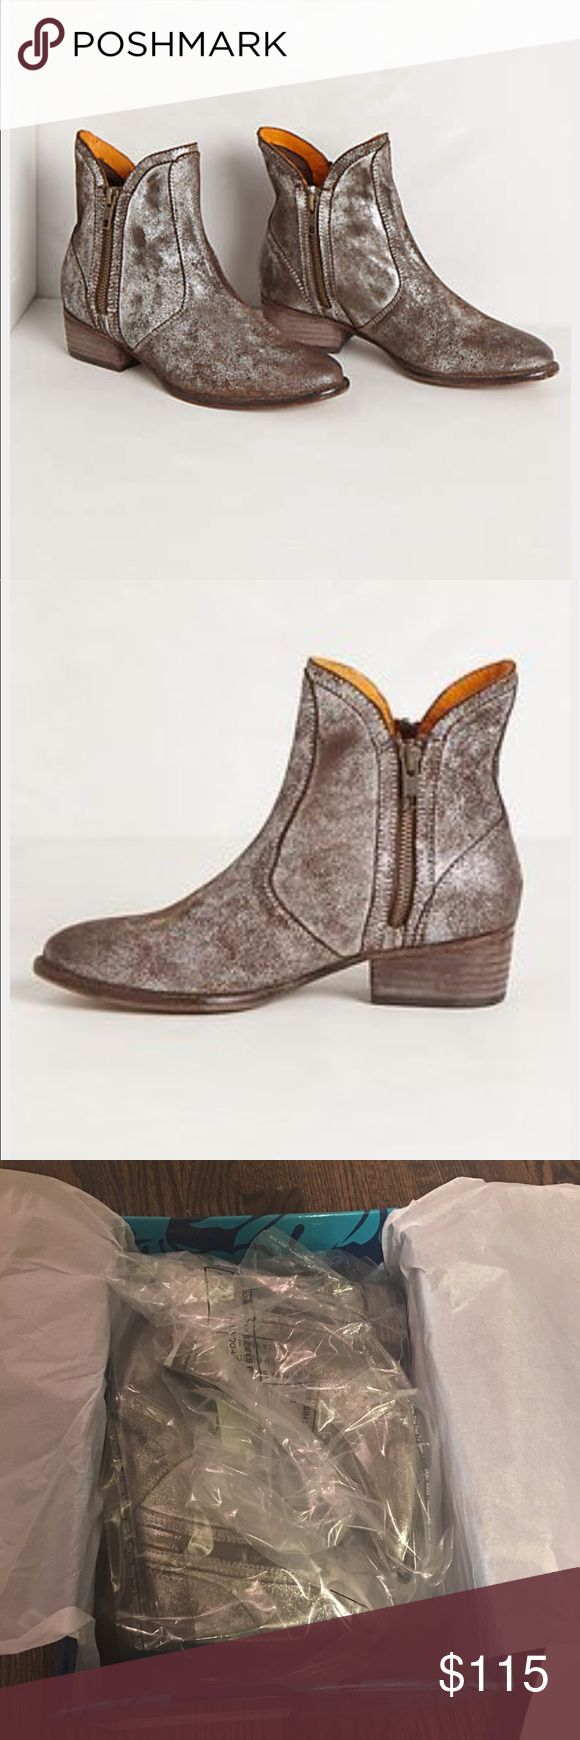 Anthro Seychelles Lucky Penny Boot Silver 6 NIB Brand new, still in original box/packaging! Anthropologie Shoes Ankle Boots & Booties